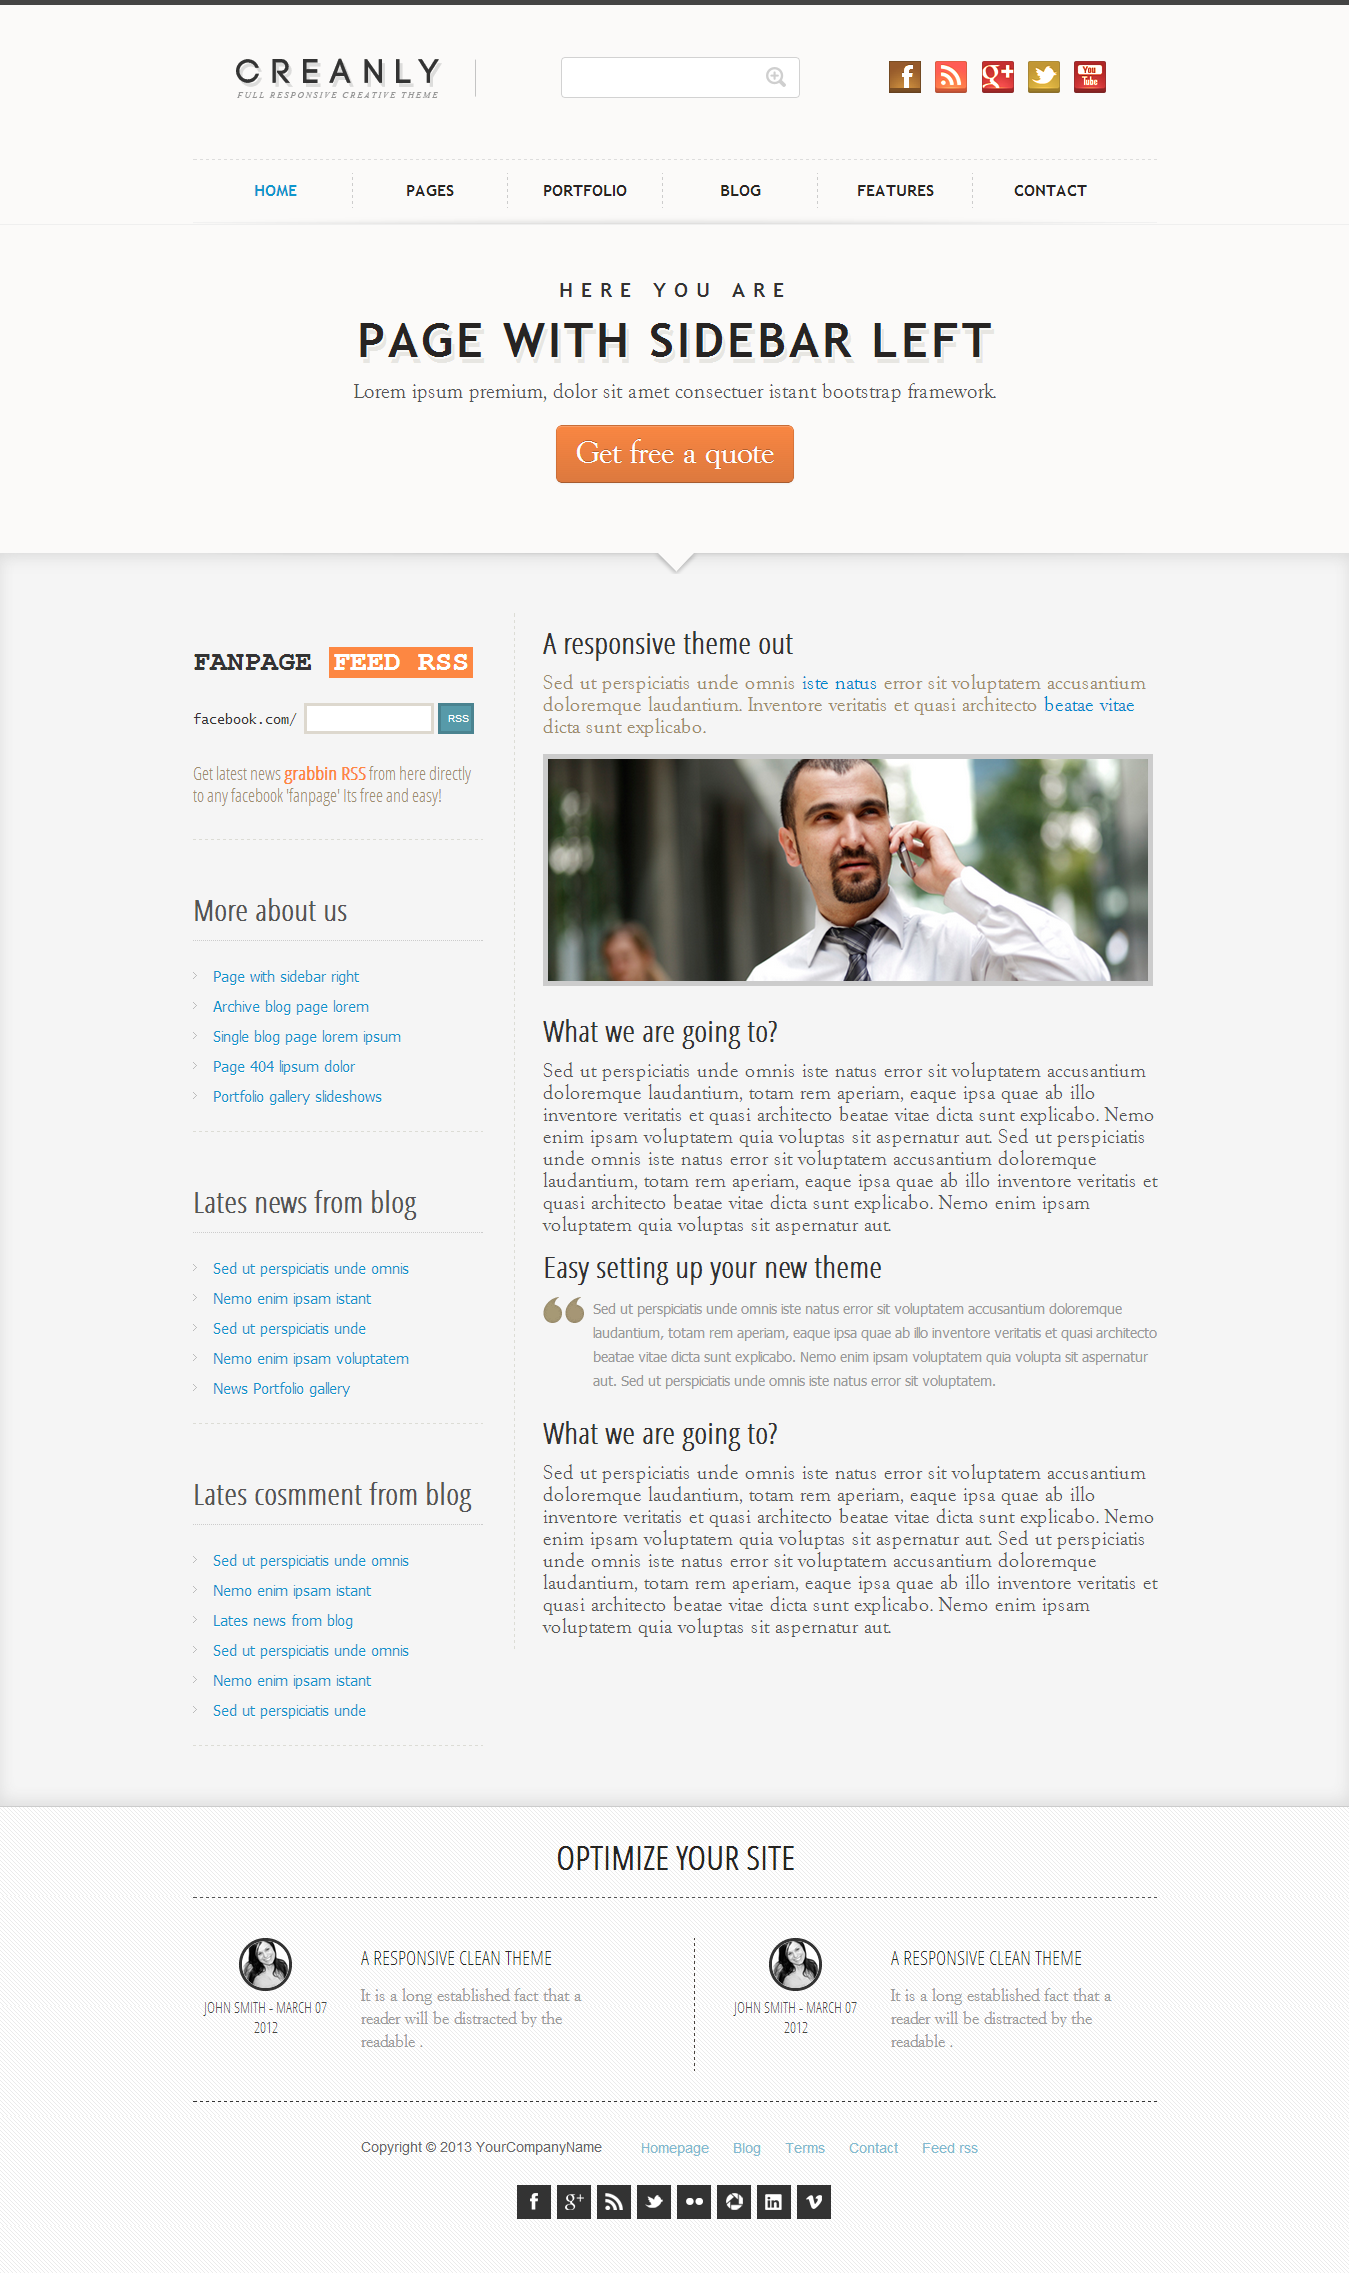 Creanly - Responsive clean theme design - This is a two column page, showing the sidebar to the left content.